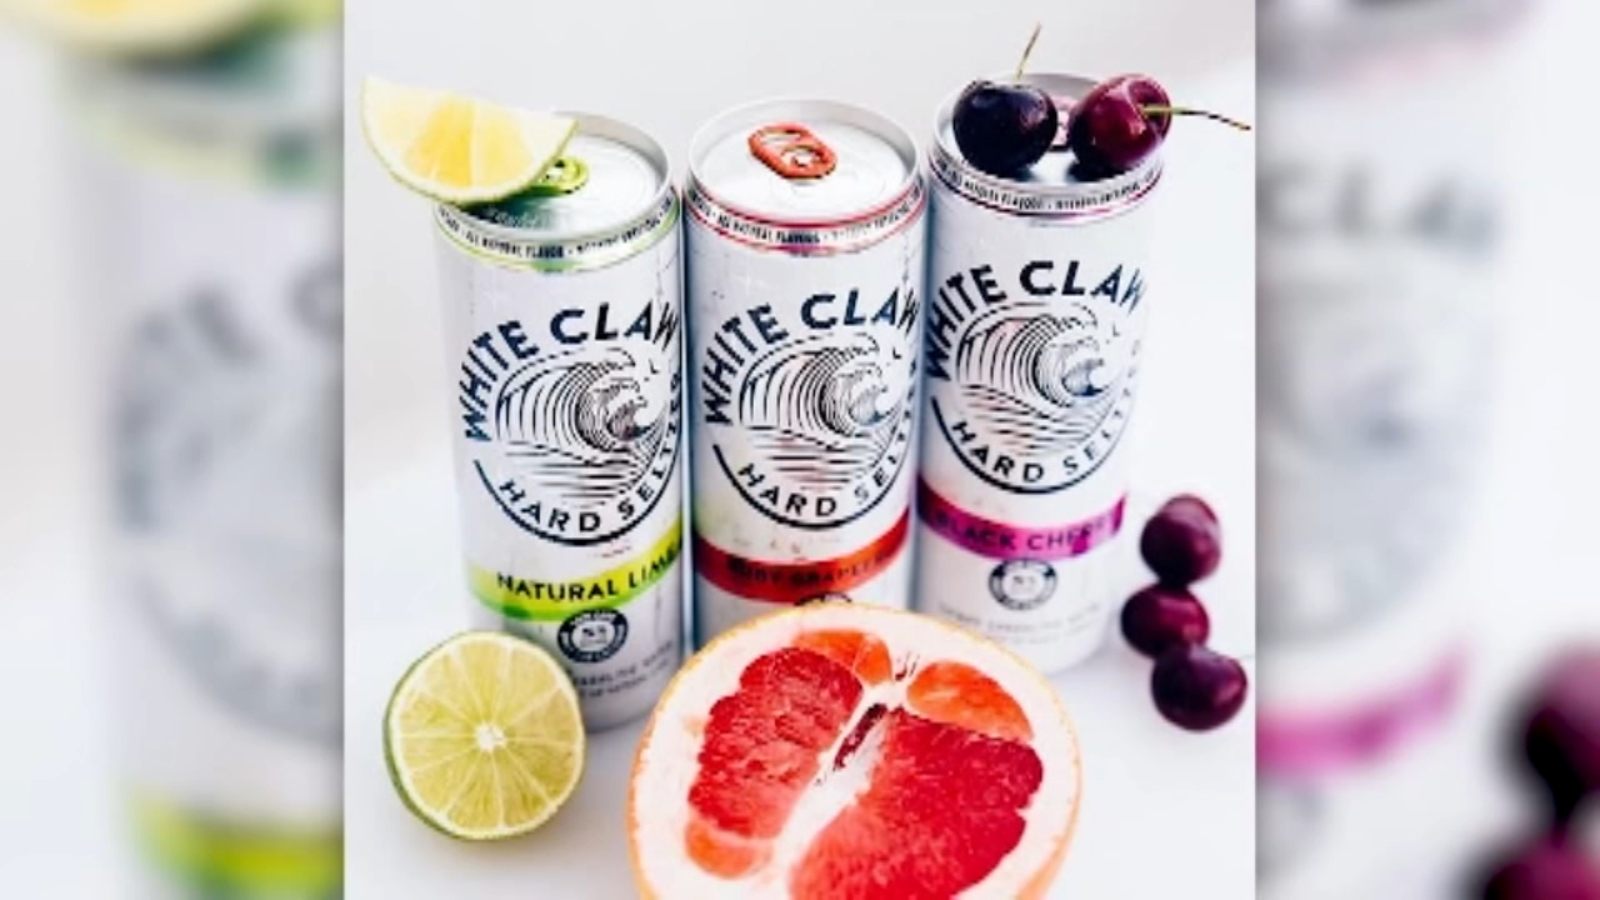 White Claw Hard Seltzer confirms nationwide shortage of ...